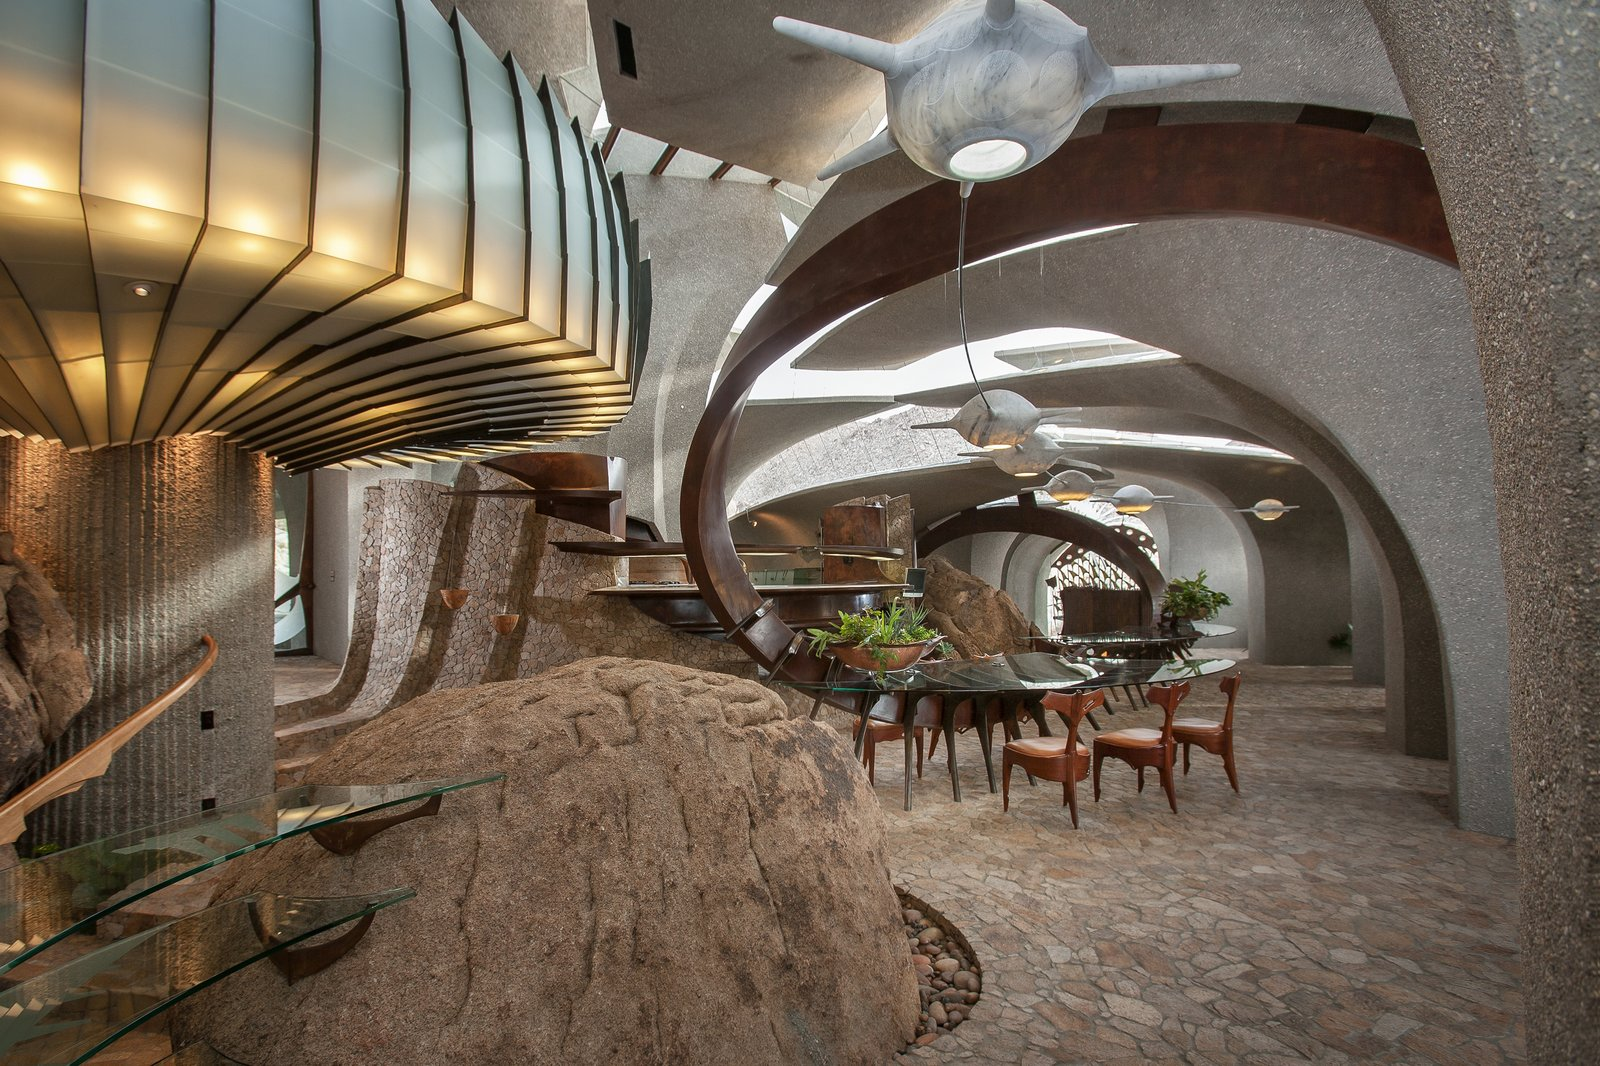 High Desert House interior dining area with cement and stone curved walls and floors.